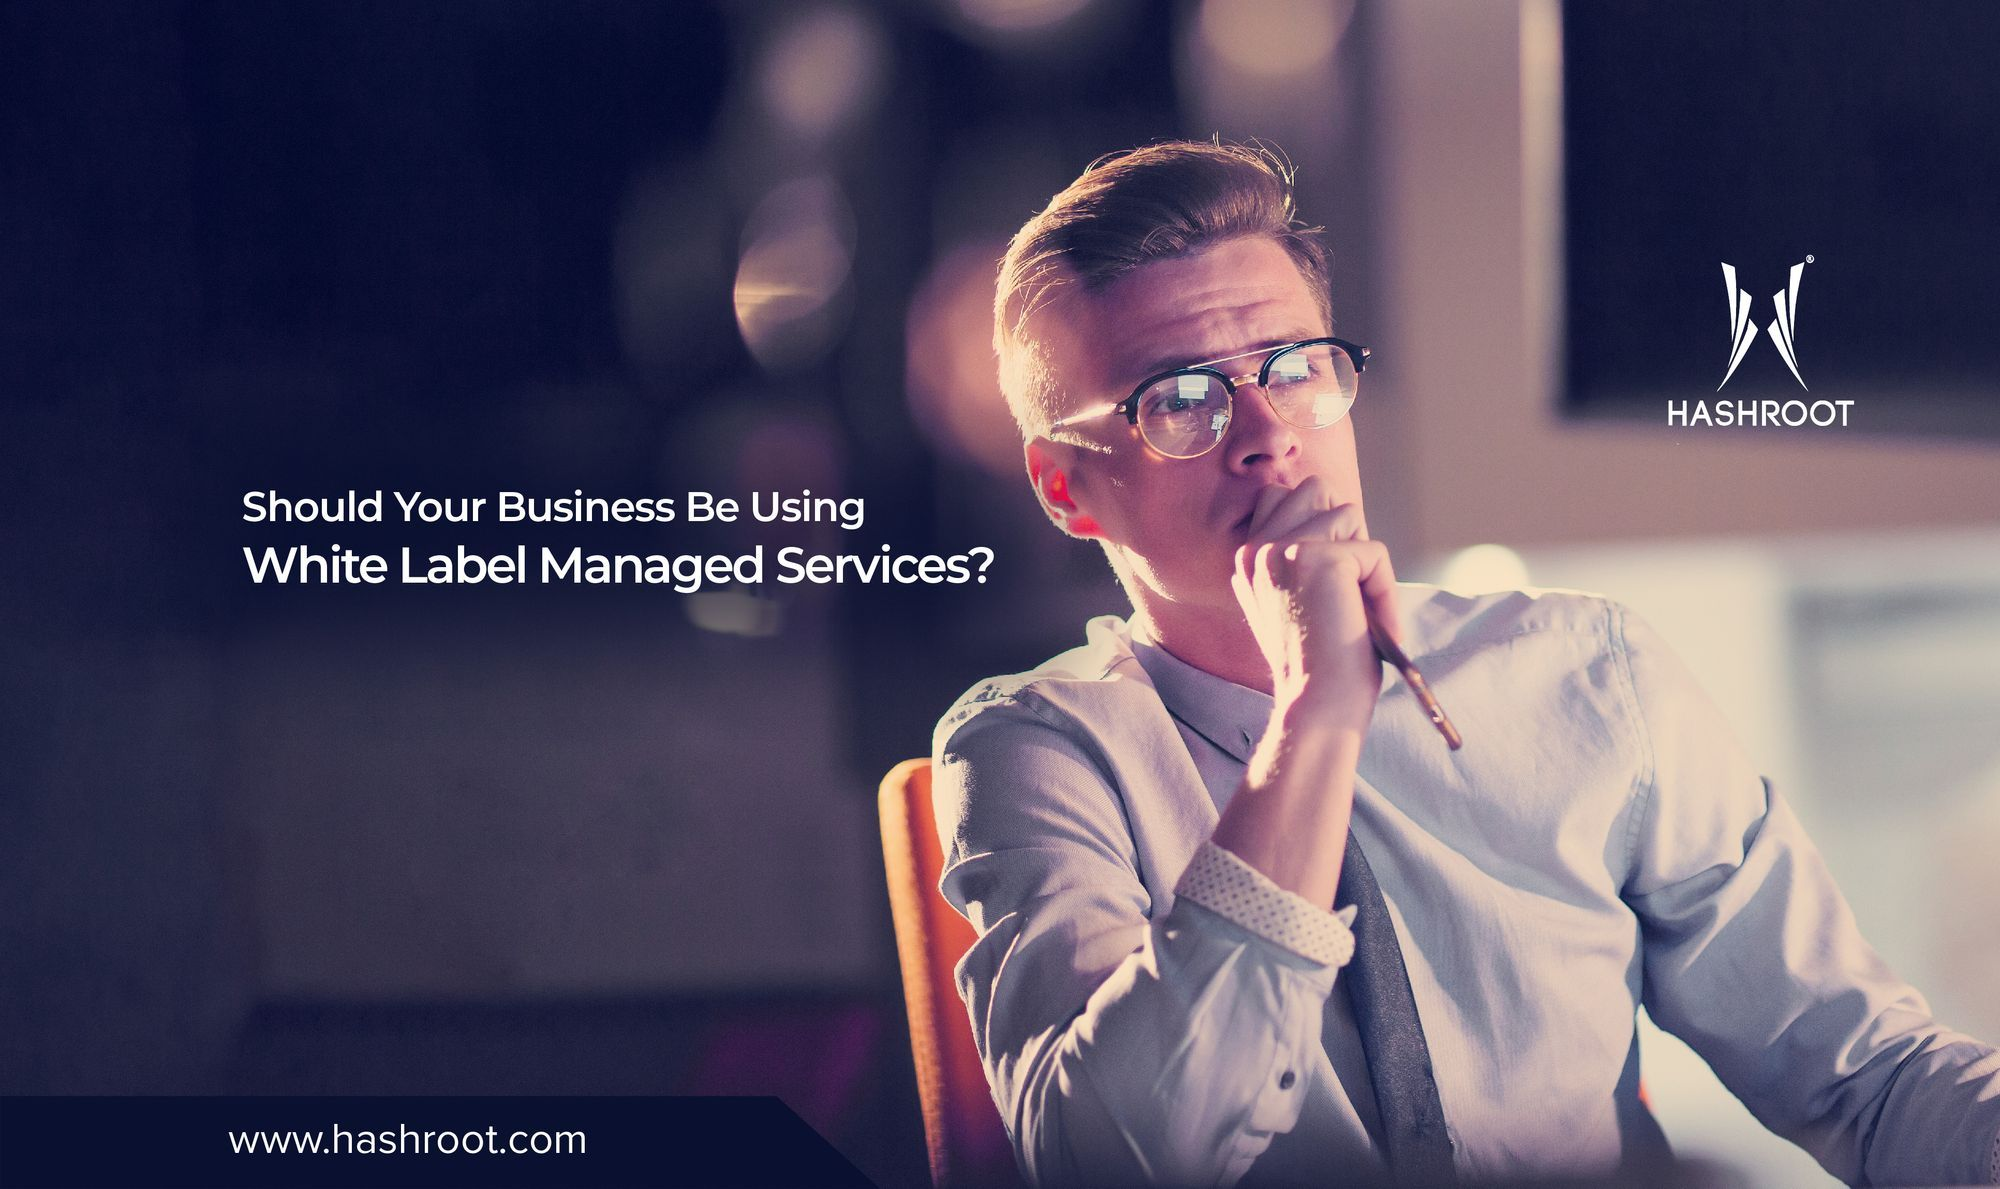 Should Your Business Be Using White Label Managed Services?